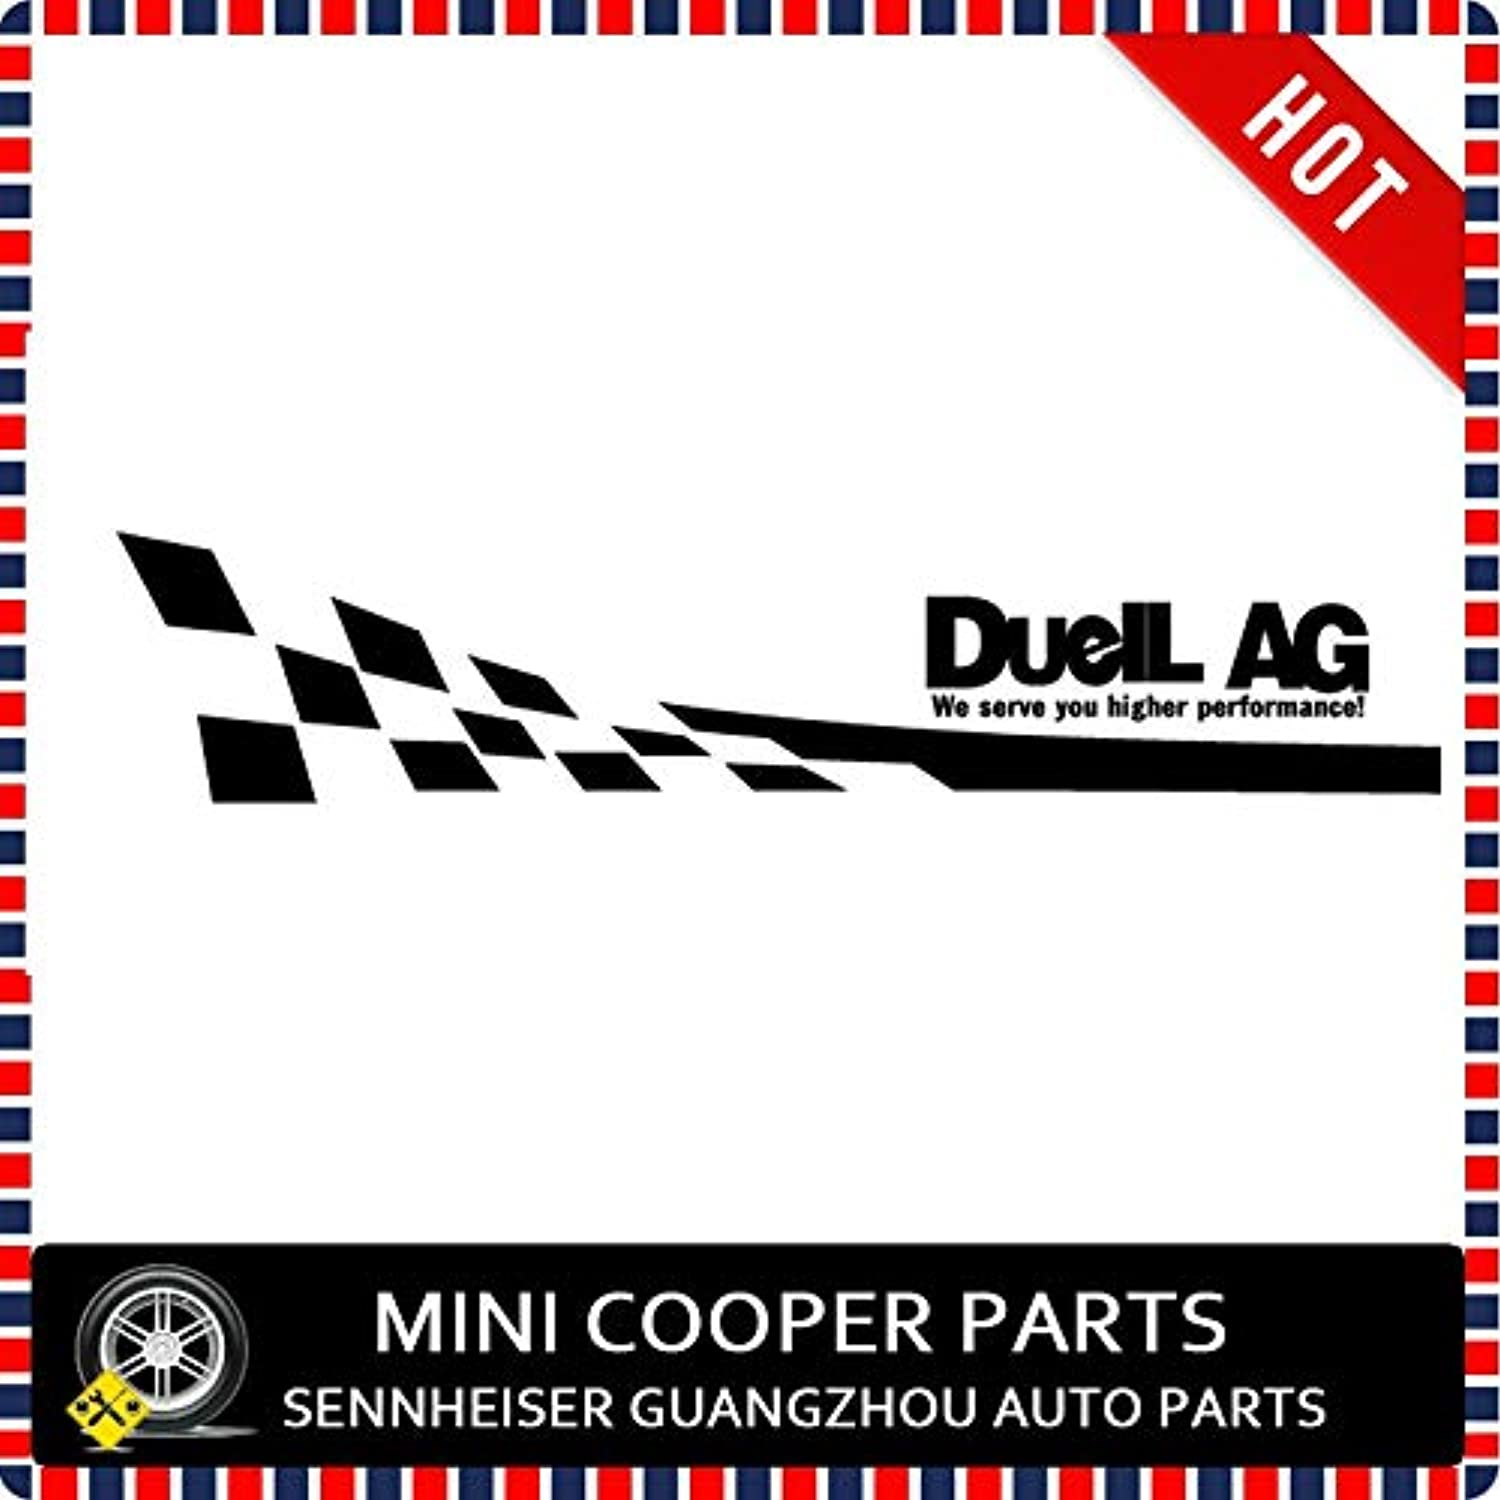 Brand New Oracal Style Car Body Sticker DuelL AG Pattern for Cooper R60 S R55 R56 R57 R58 R59 R61 F55 F56(2 Pcs Set  (Style  Oracal DuelL AG)